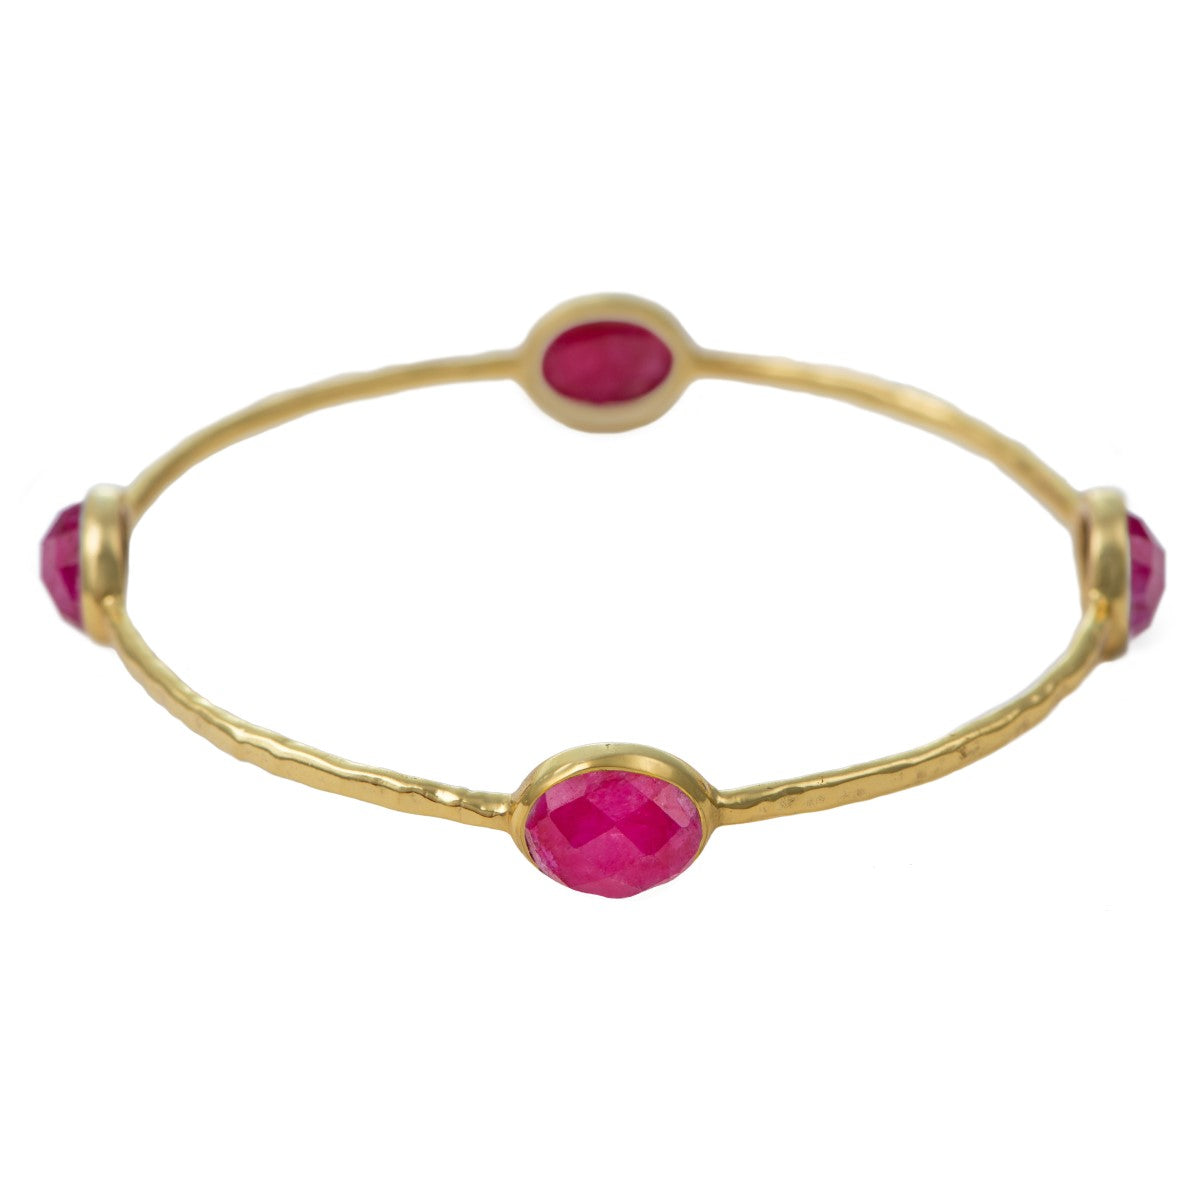 Ruby Quartz Gemstone Bangle in Gold Plated Sterling Silver